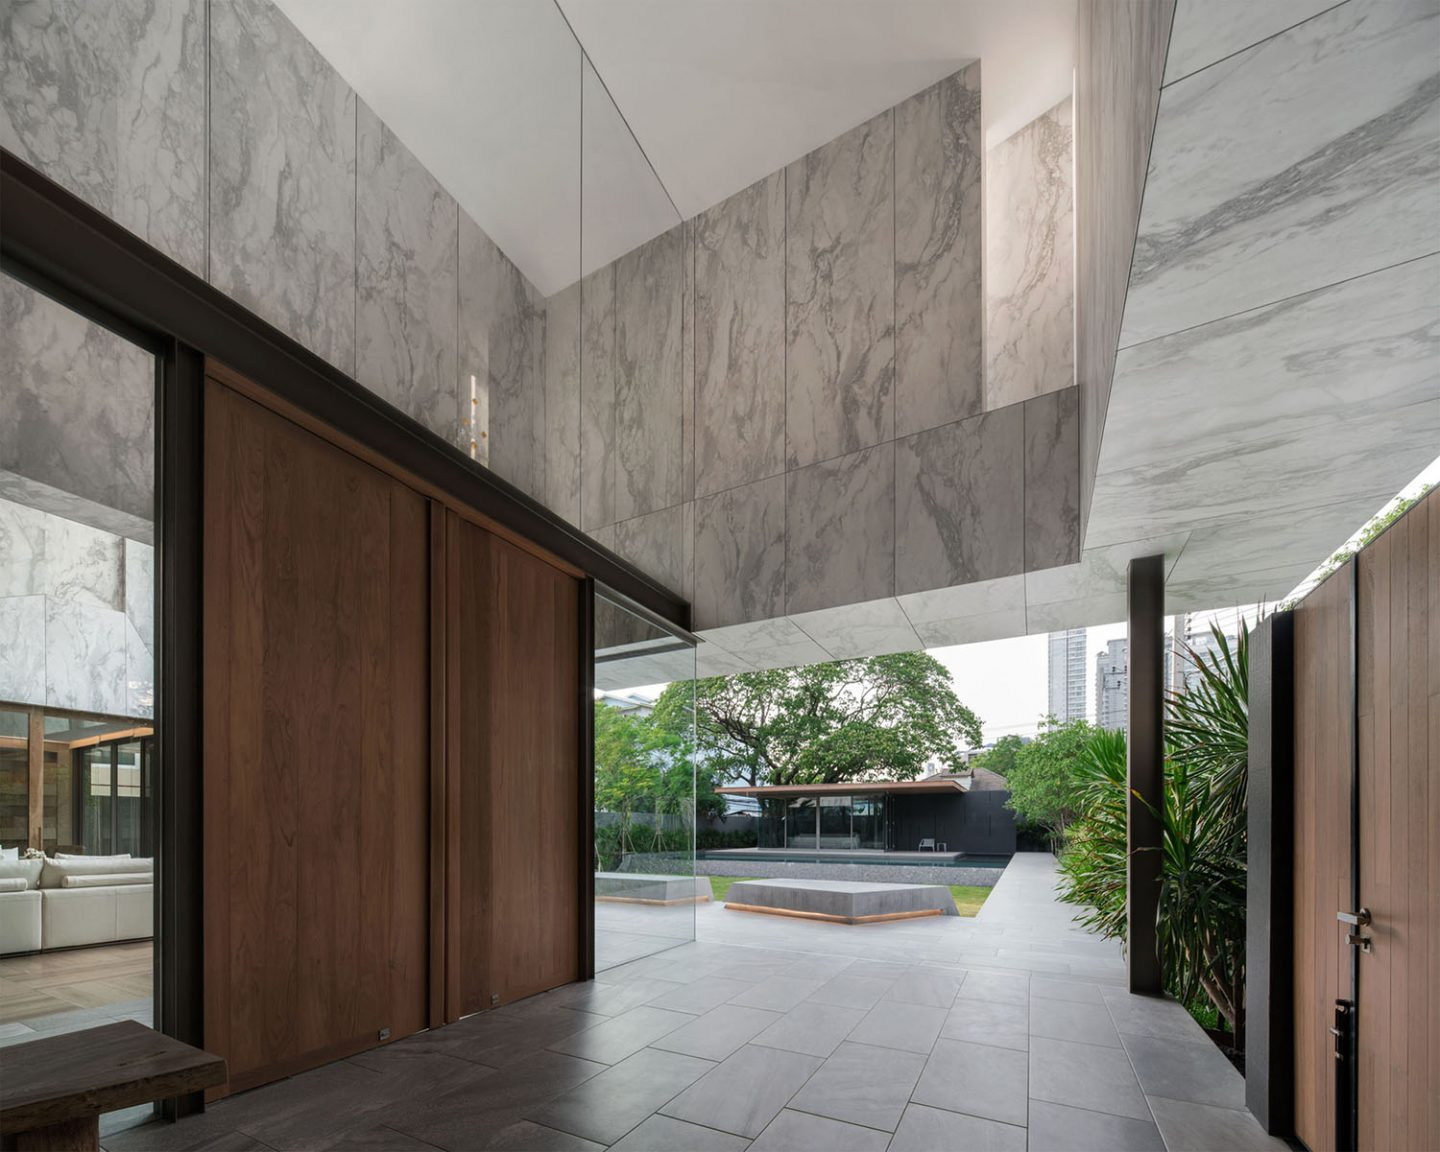 iGNANT_Architecture_Openbox_Marble_House_4